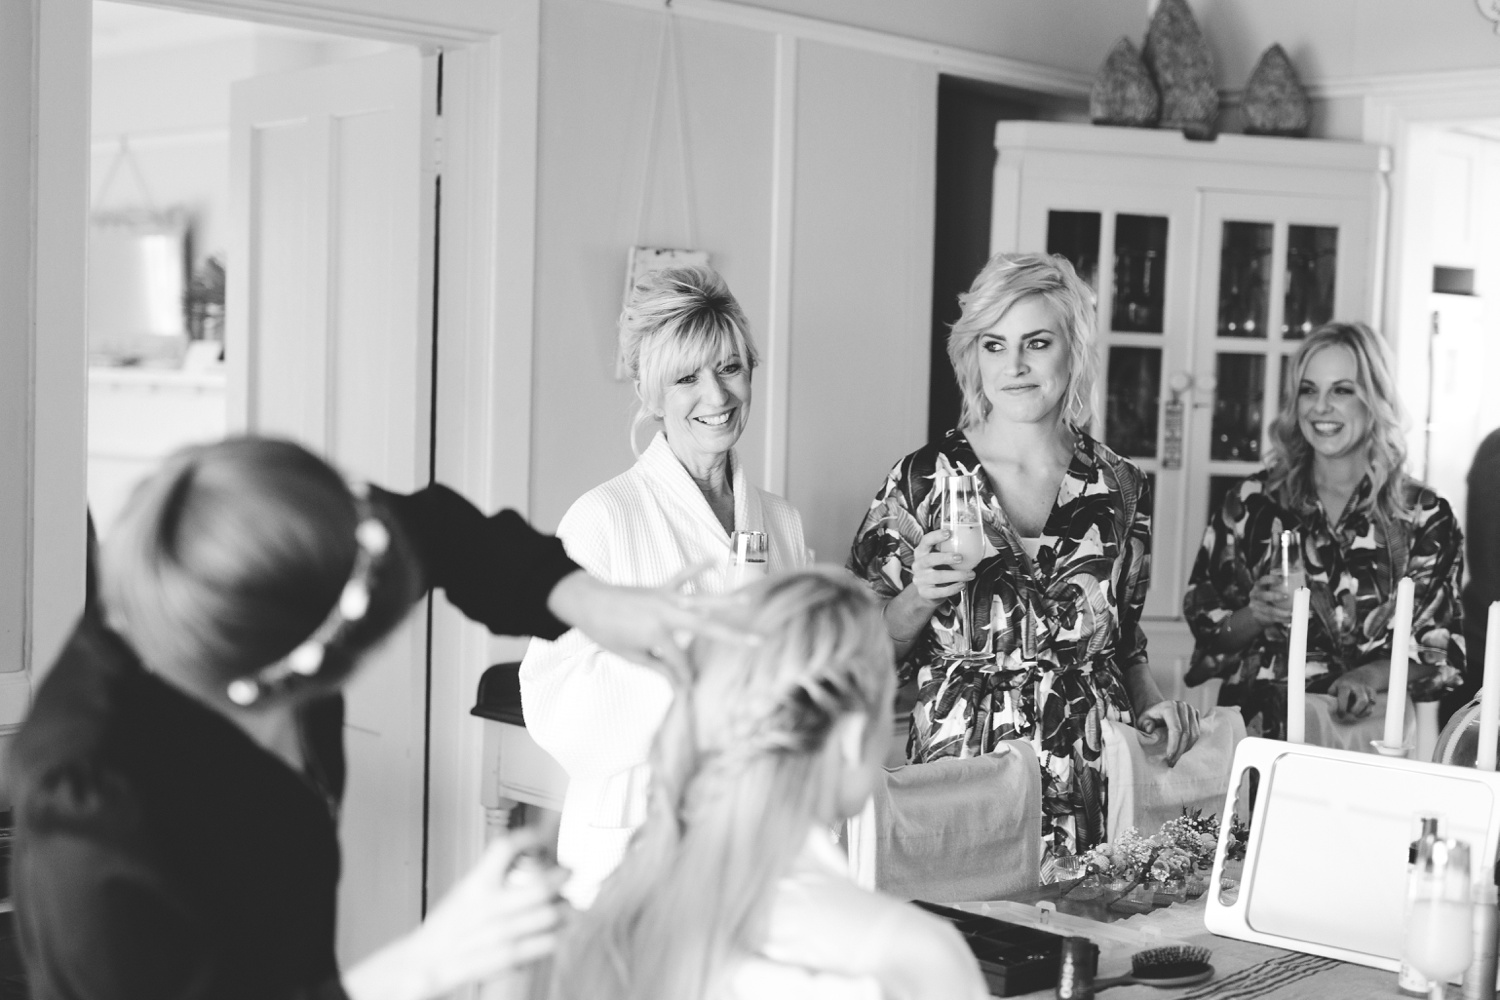 cathryn_warwick_wearecharlieray_hopewell_conservation_eastern_cape_wedding_0013.jpg